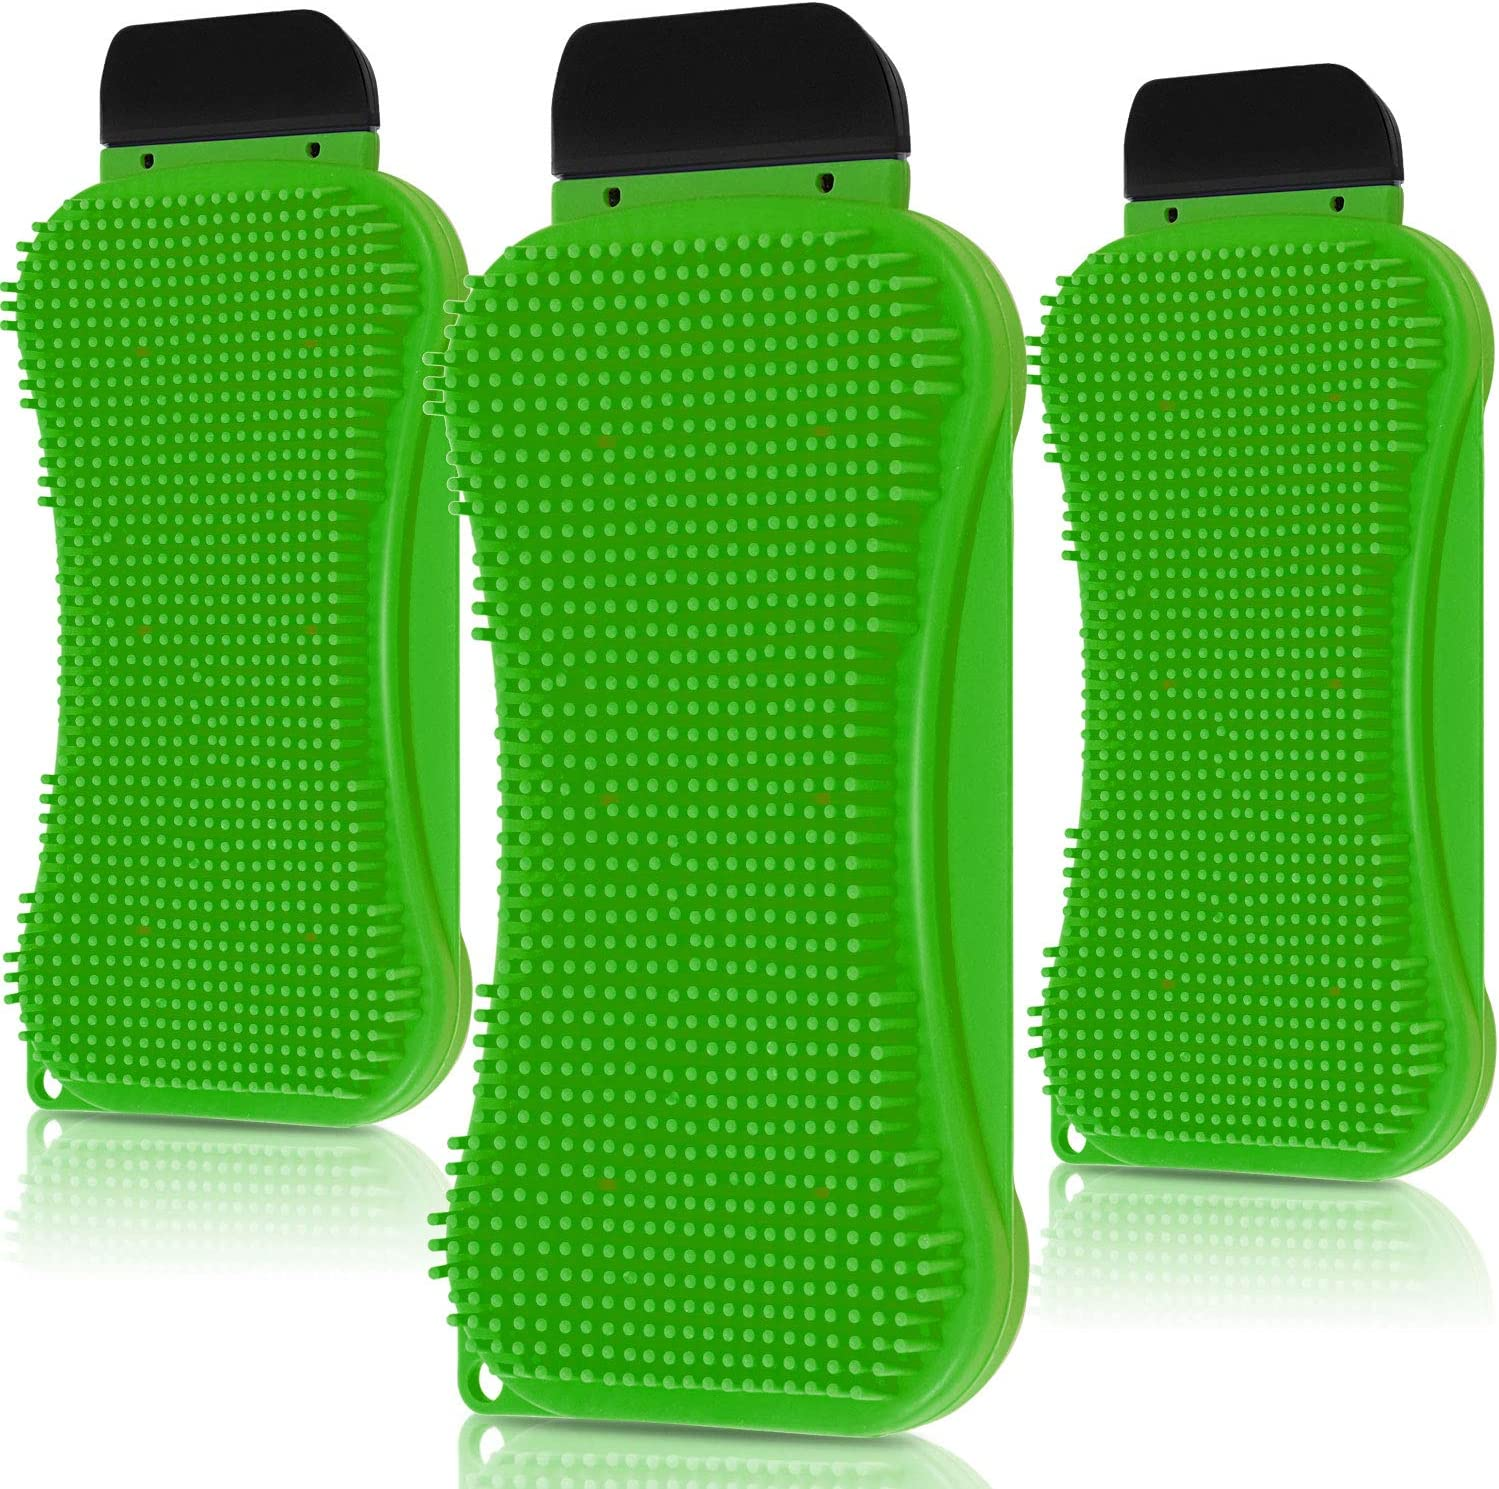 3 Packs 3-in-1 Silicone Sponge Silicone Kitchen Scrubber Multi-Functional Silicone Sponge Scraper Cleaning Brush Dish Brush Wash Cleaning Tool for Kitchen Bathroom (Green)